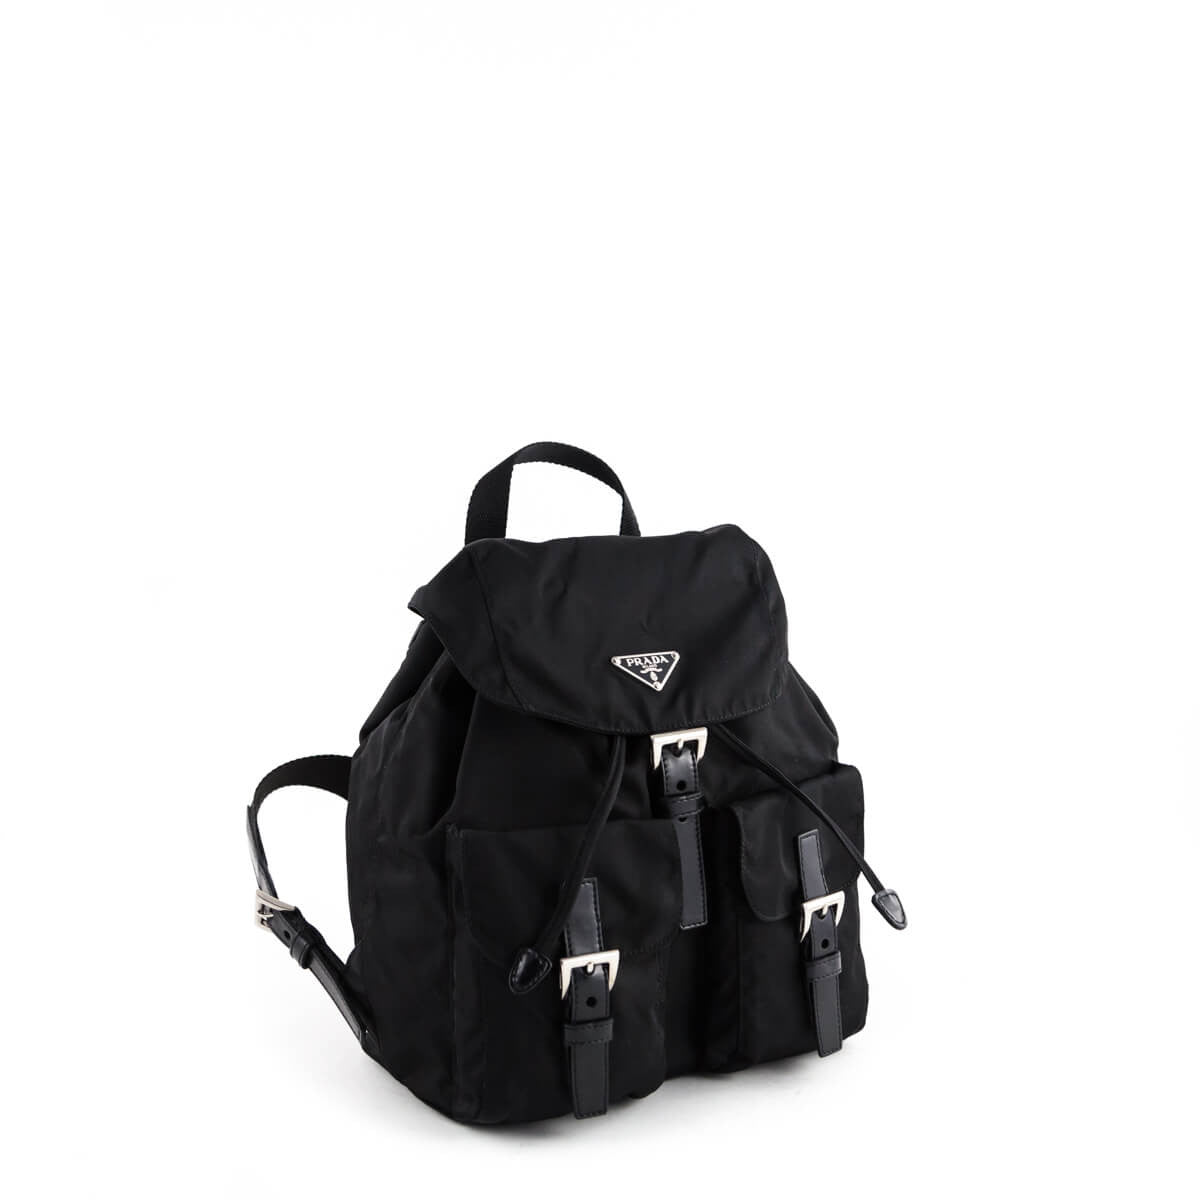 Prada Backpack Review